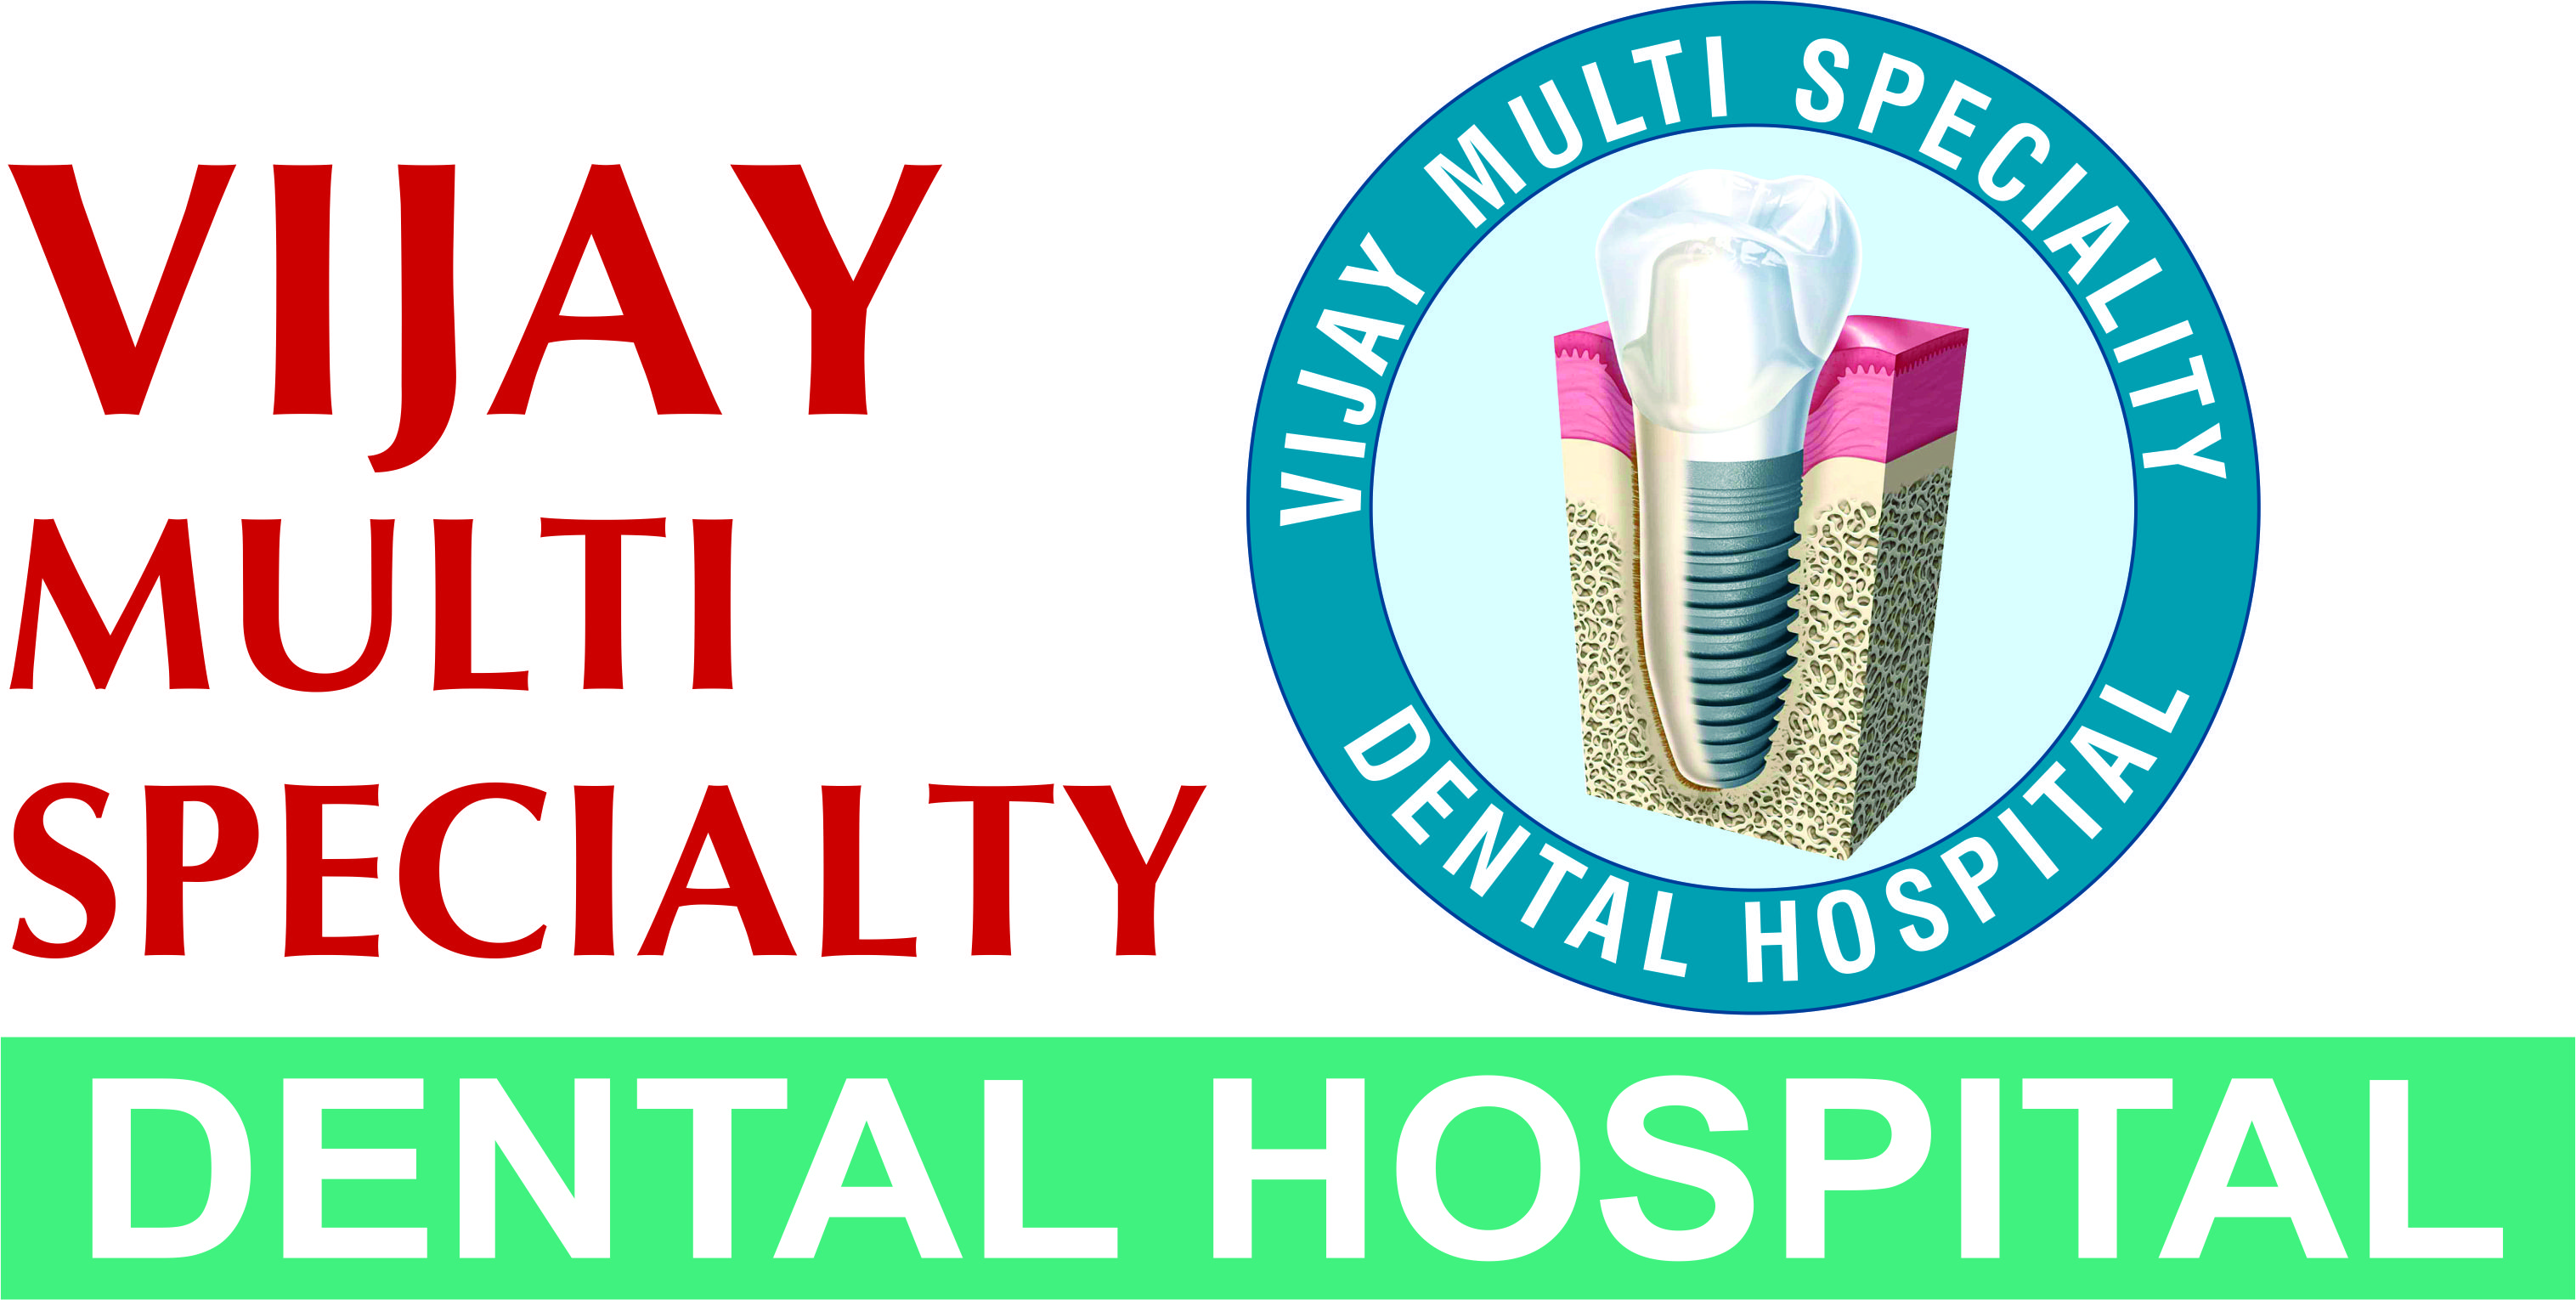 Vijay Multispeciality Dental Hospital